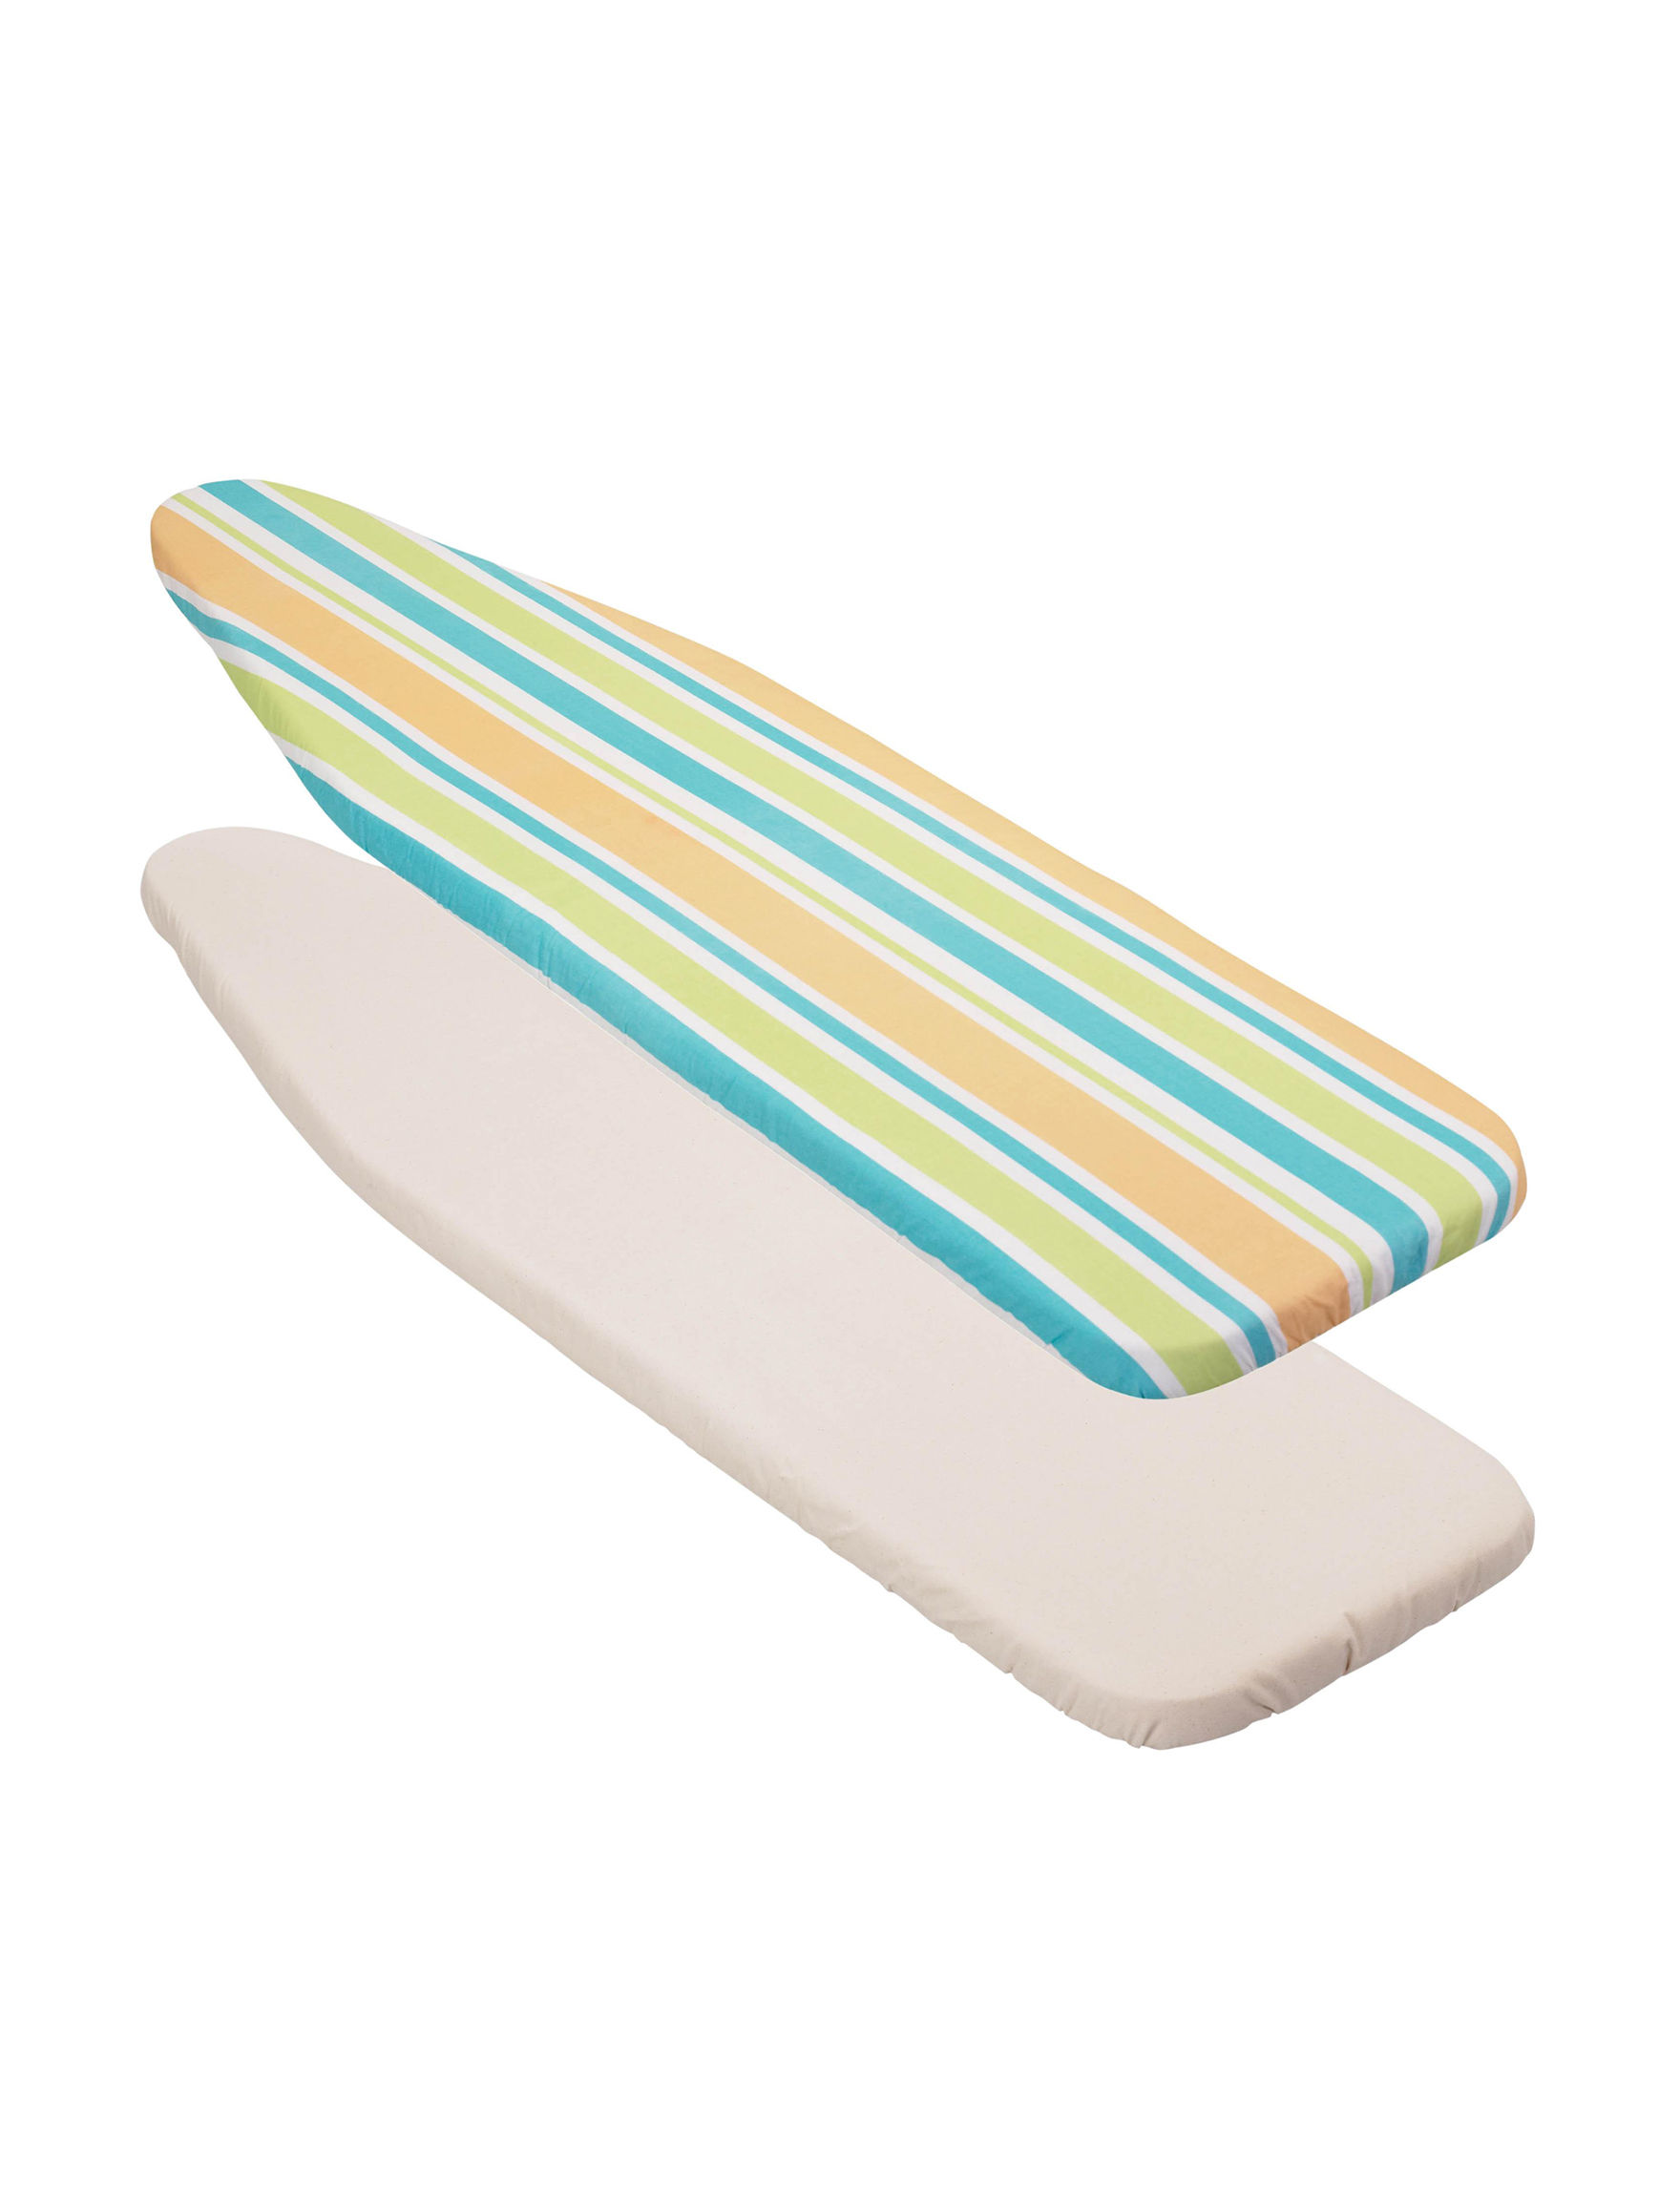 Honey-Can-Do International Green Multi Irons & Ironing Boards Irons & Clothing Care